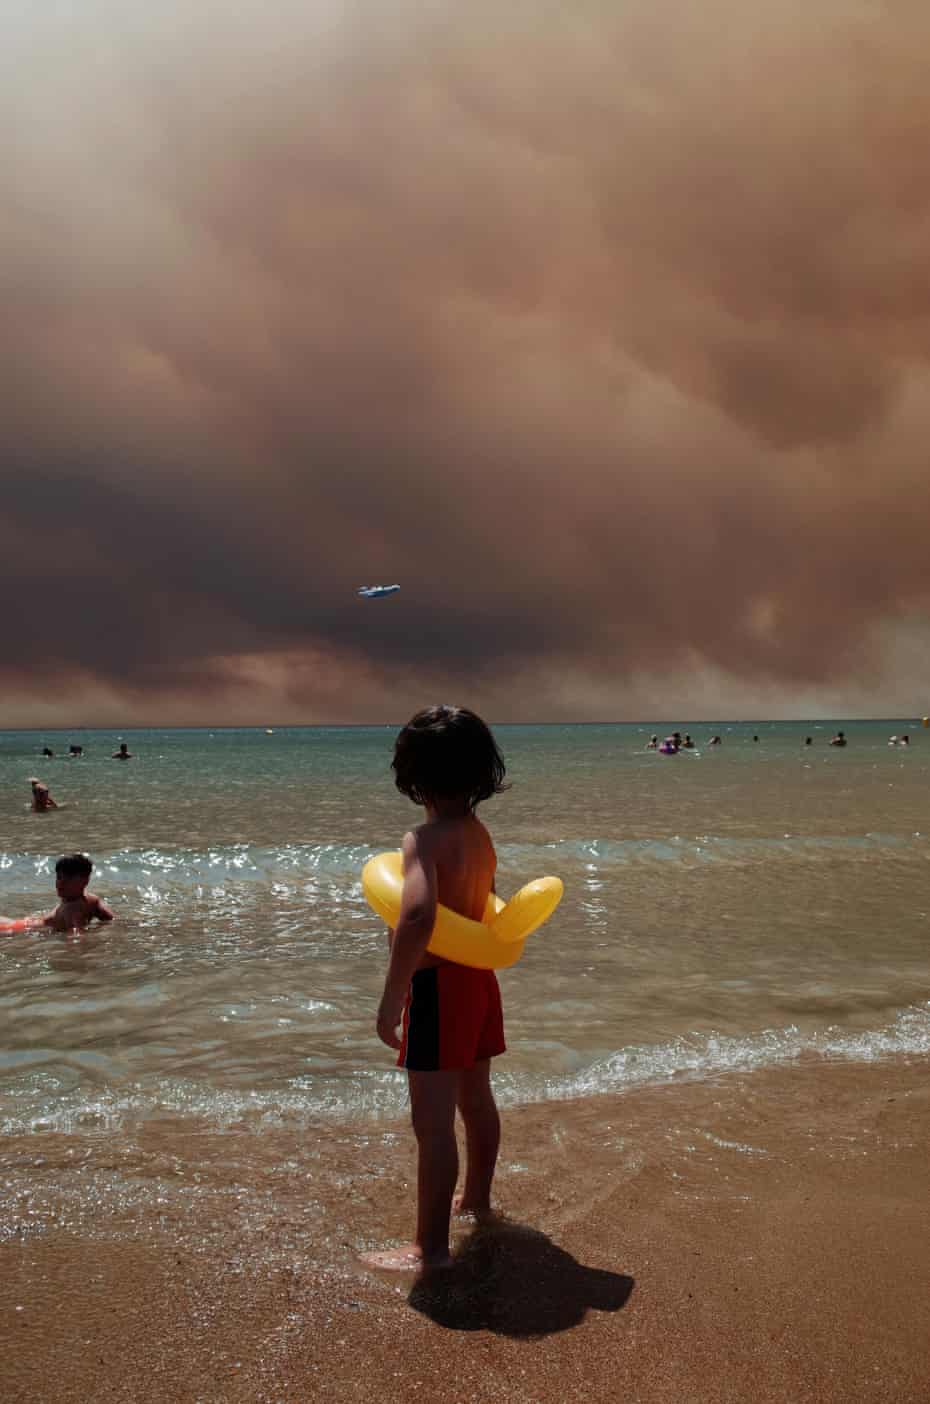 A child on a beach watches smoke from wildfires in Turkey.